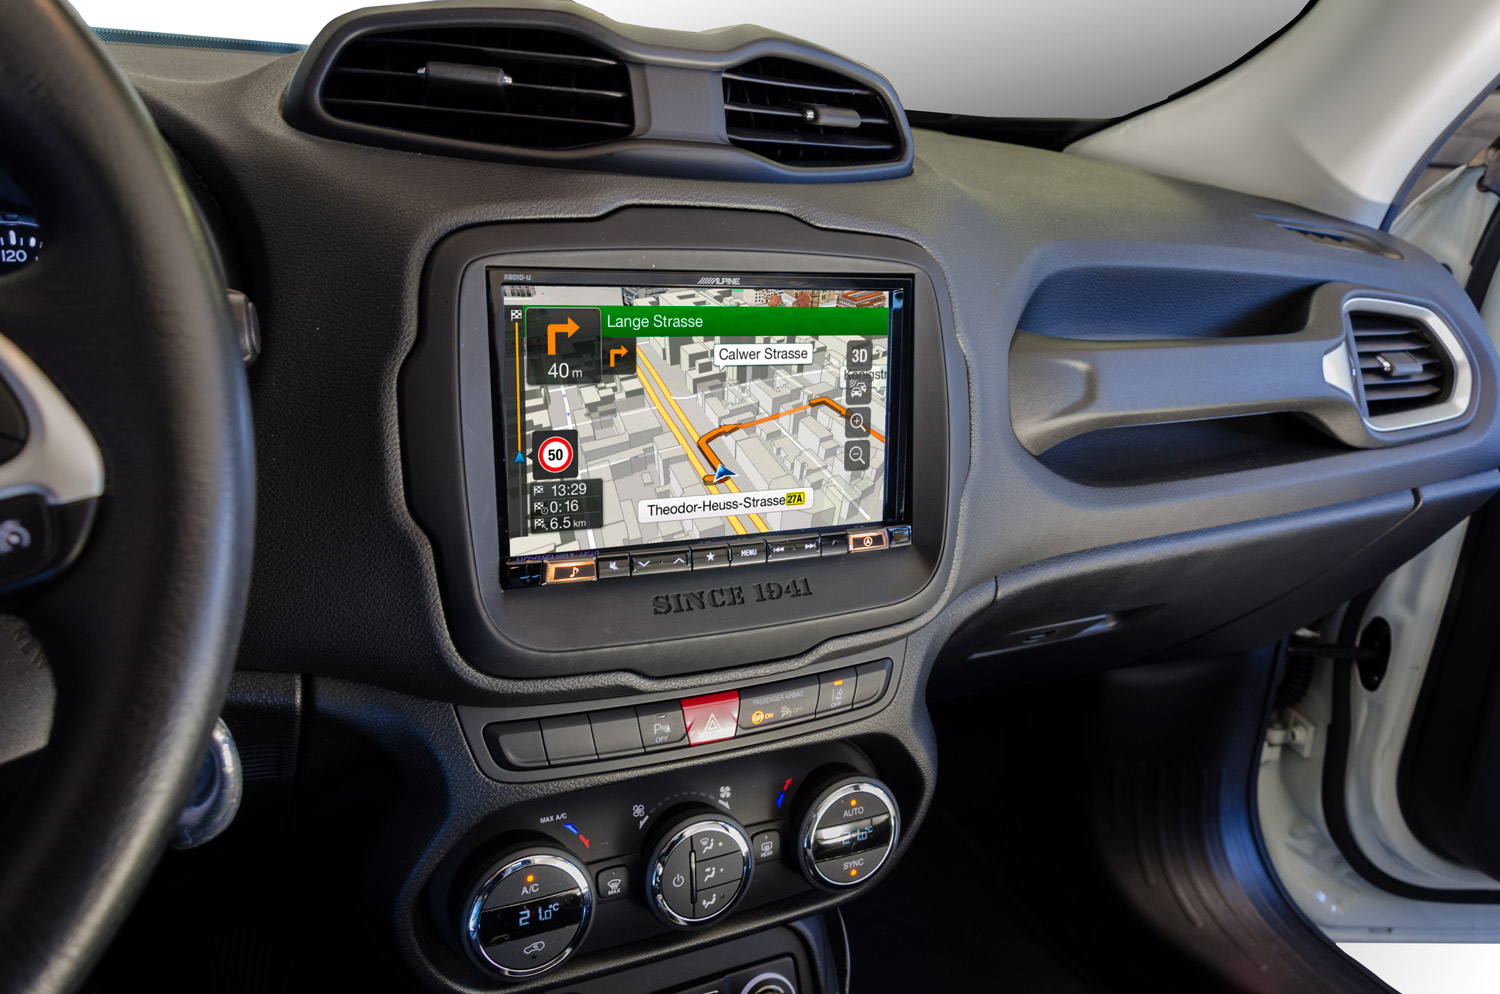 jeep renegade cruscotto con sistema multimediale alpine x-801d